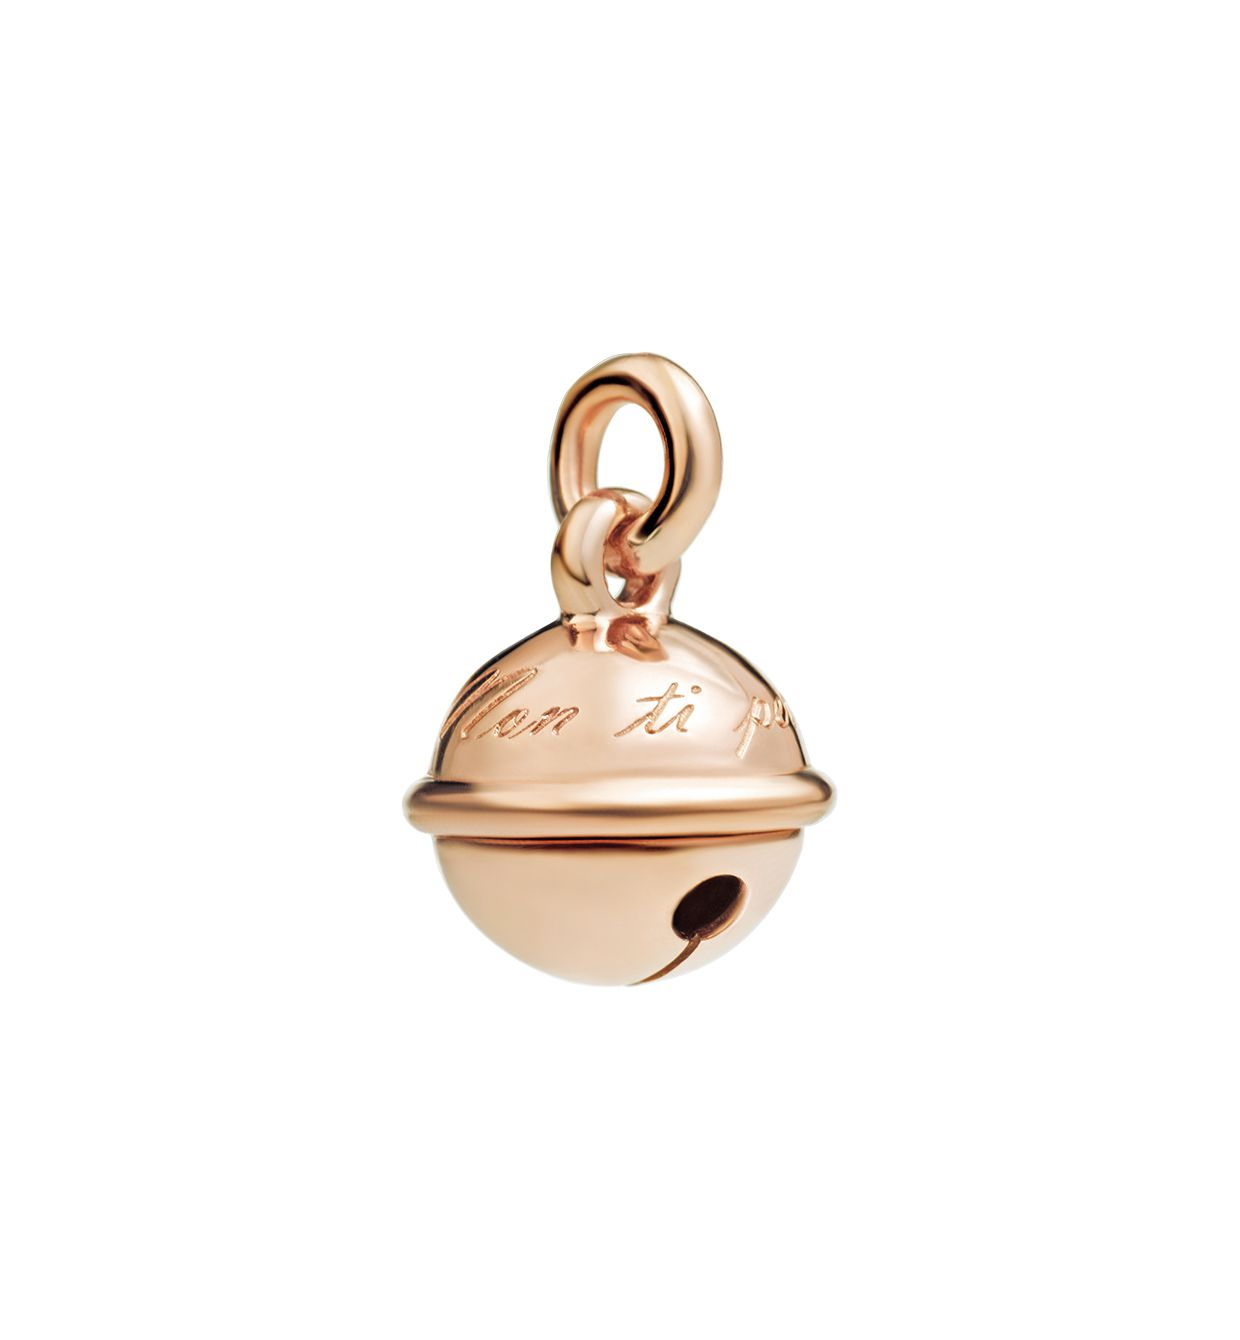 DoDo Bell in 9k Rose Gold (large) - Orsini Jewellers NZ